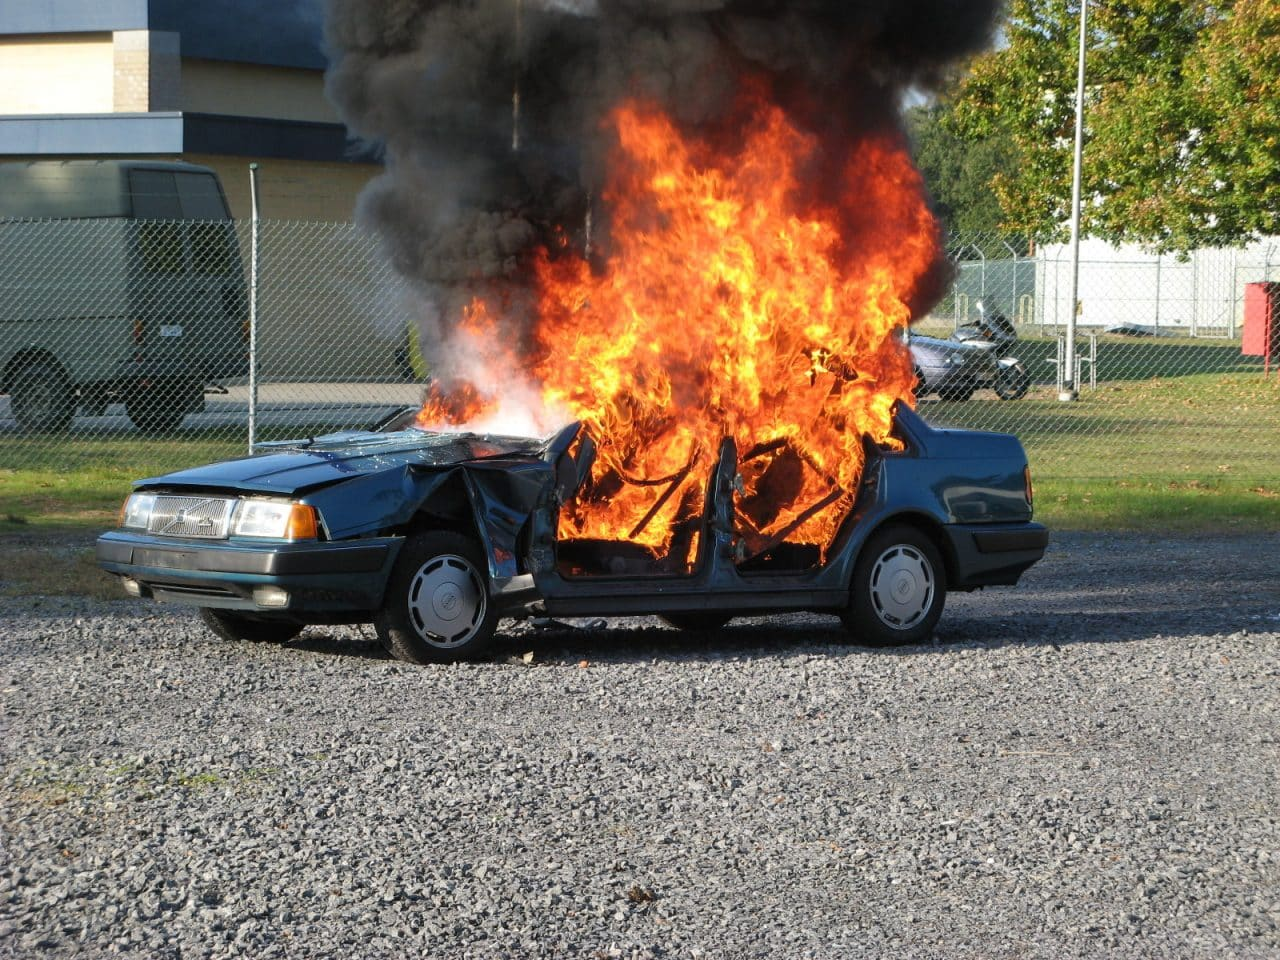 Private parking enforcement firms apply for permission to torch cars and piss on the ashes